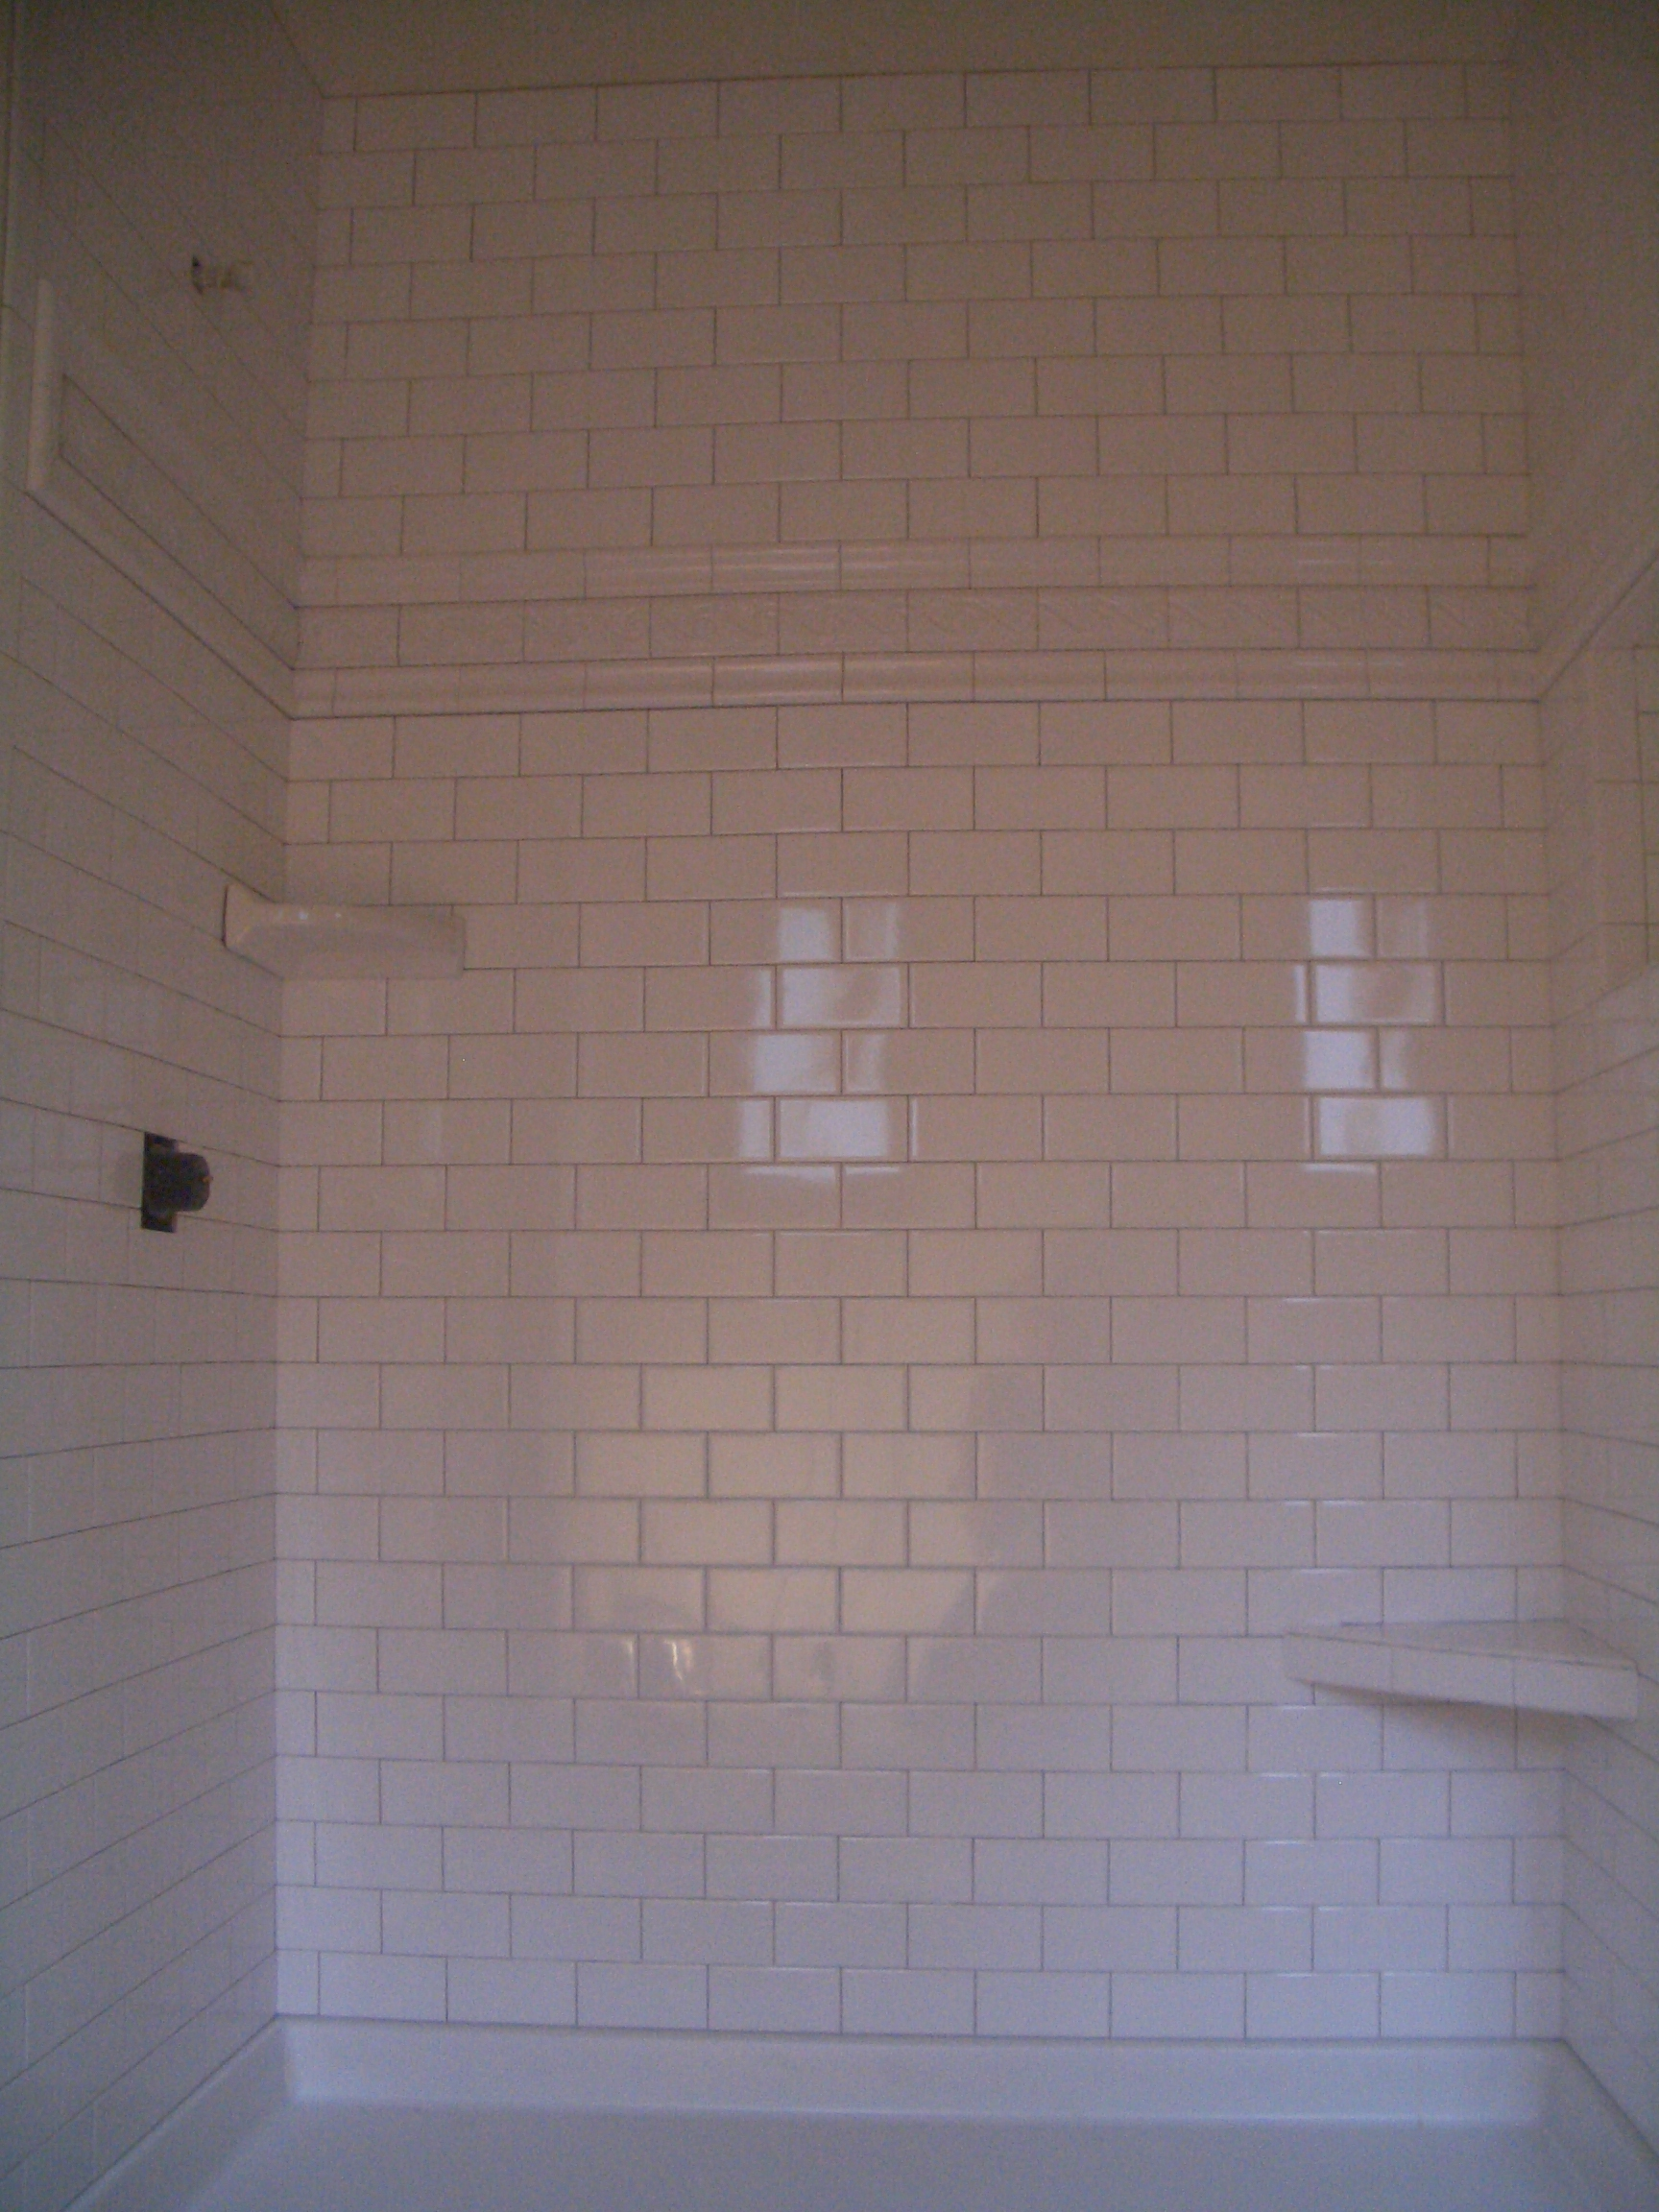 recently finished a shower with 3 x 6 inch ceramic subway tiles. I